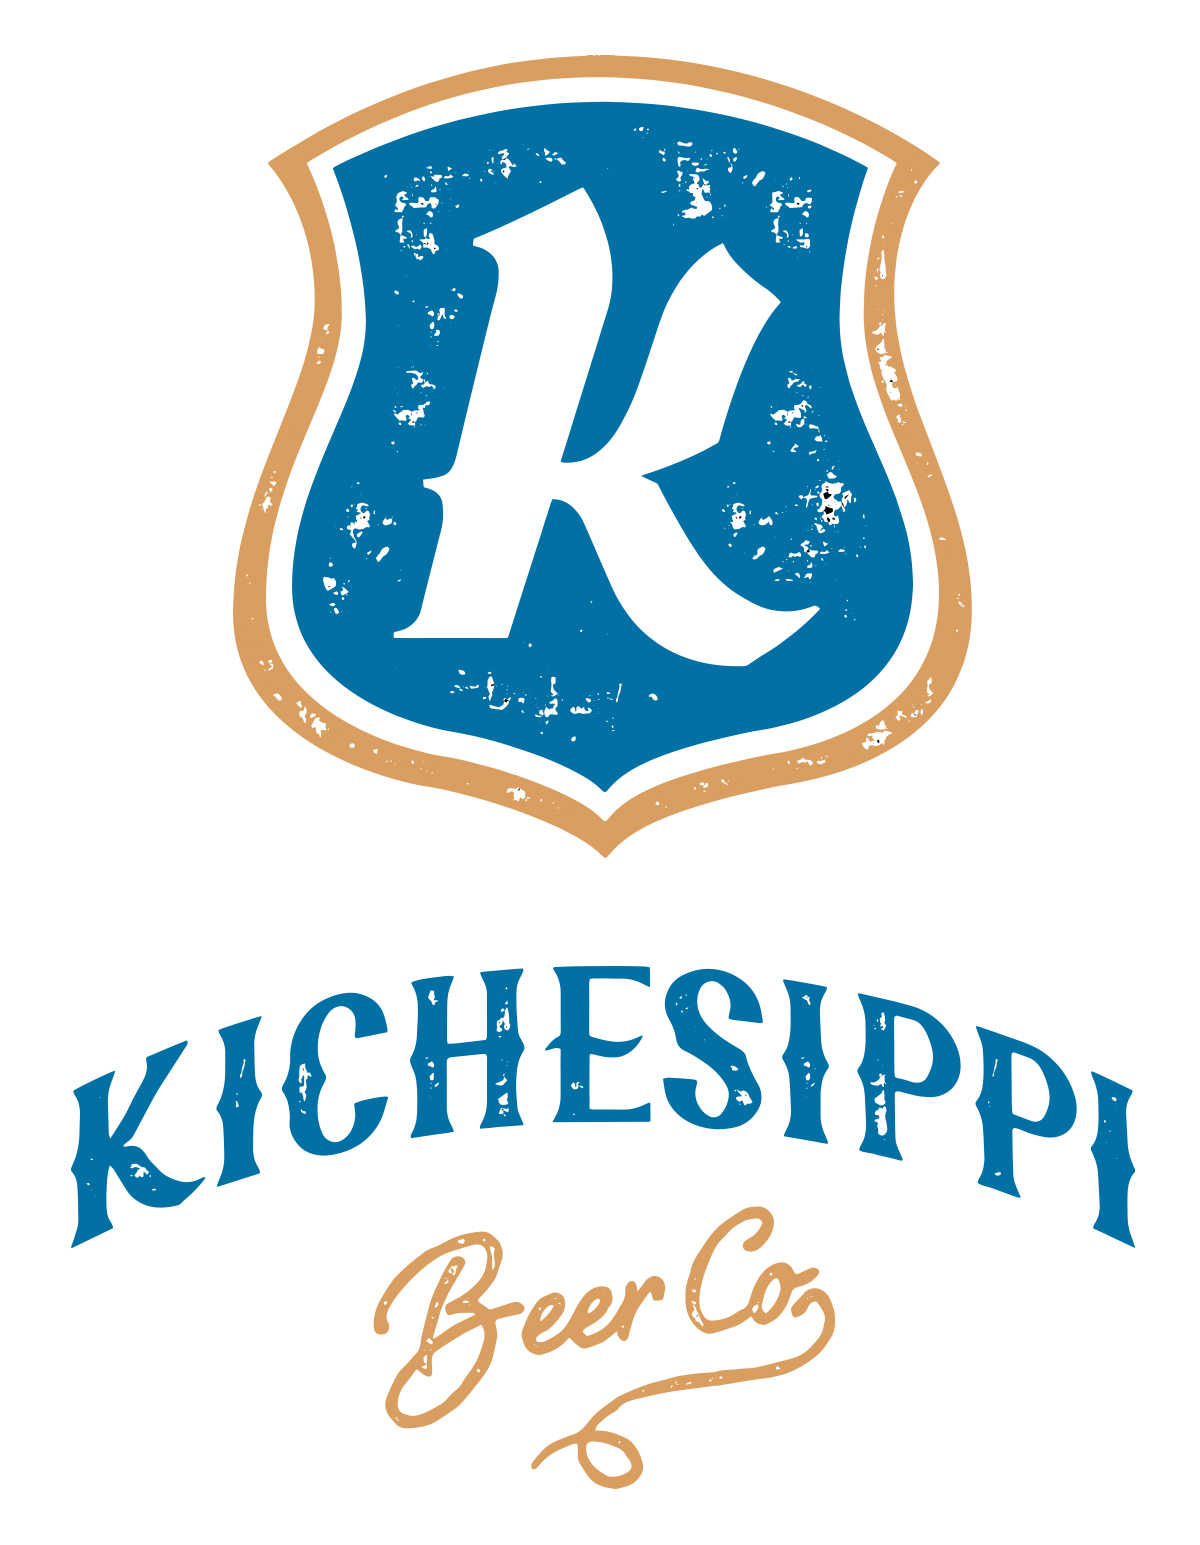 Kichesippi Beer Co_logo-2 (1).jpg